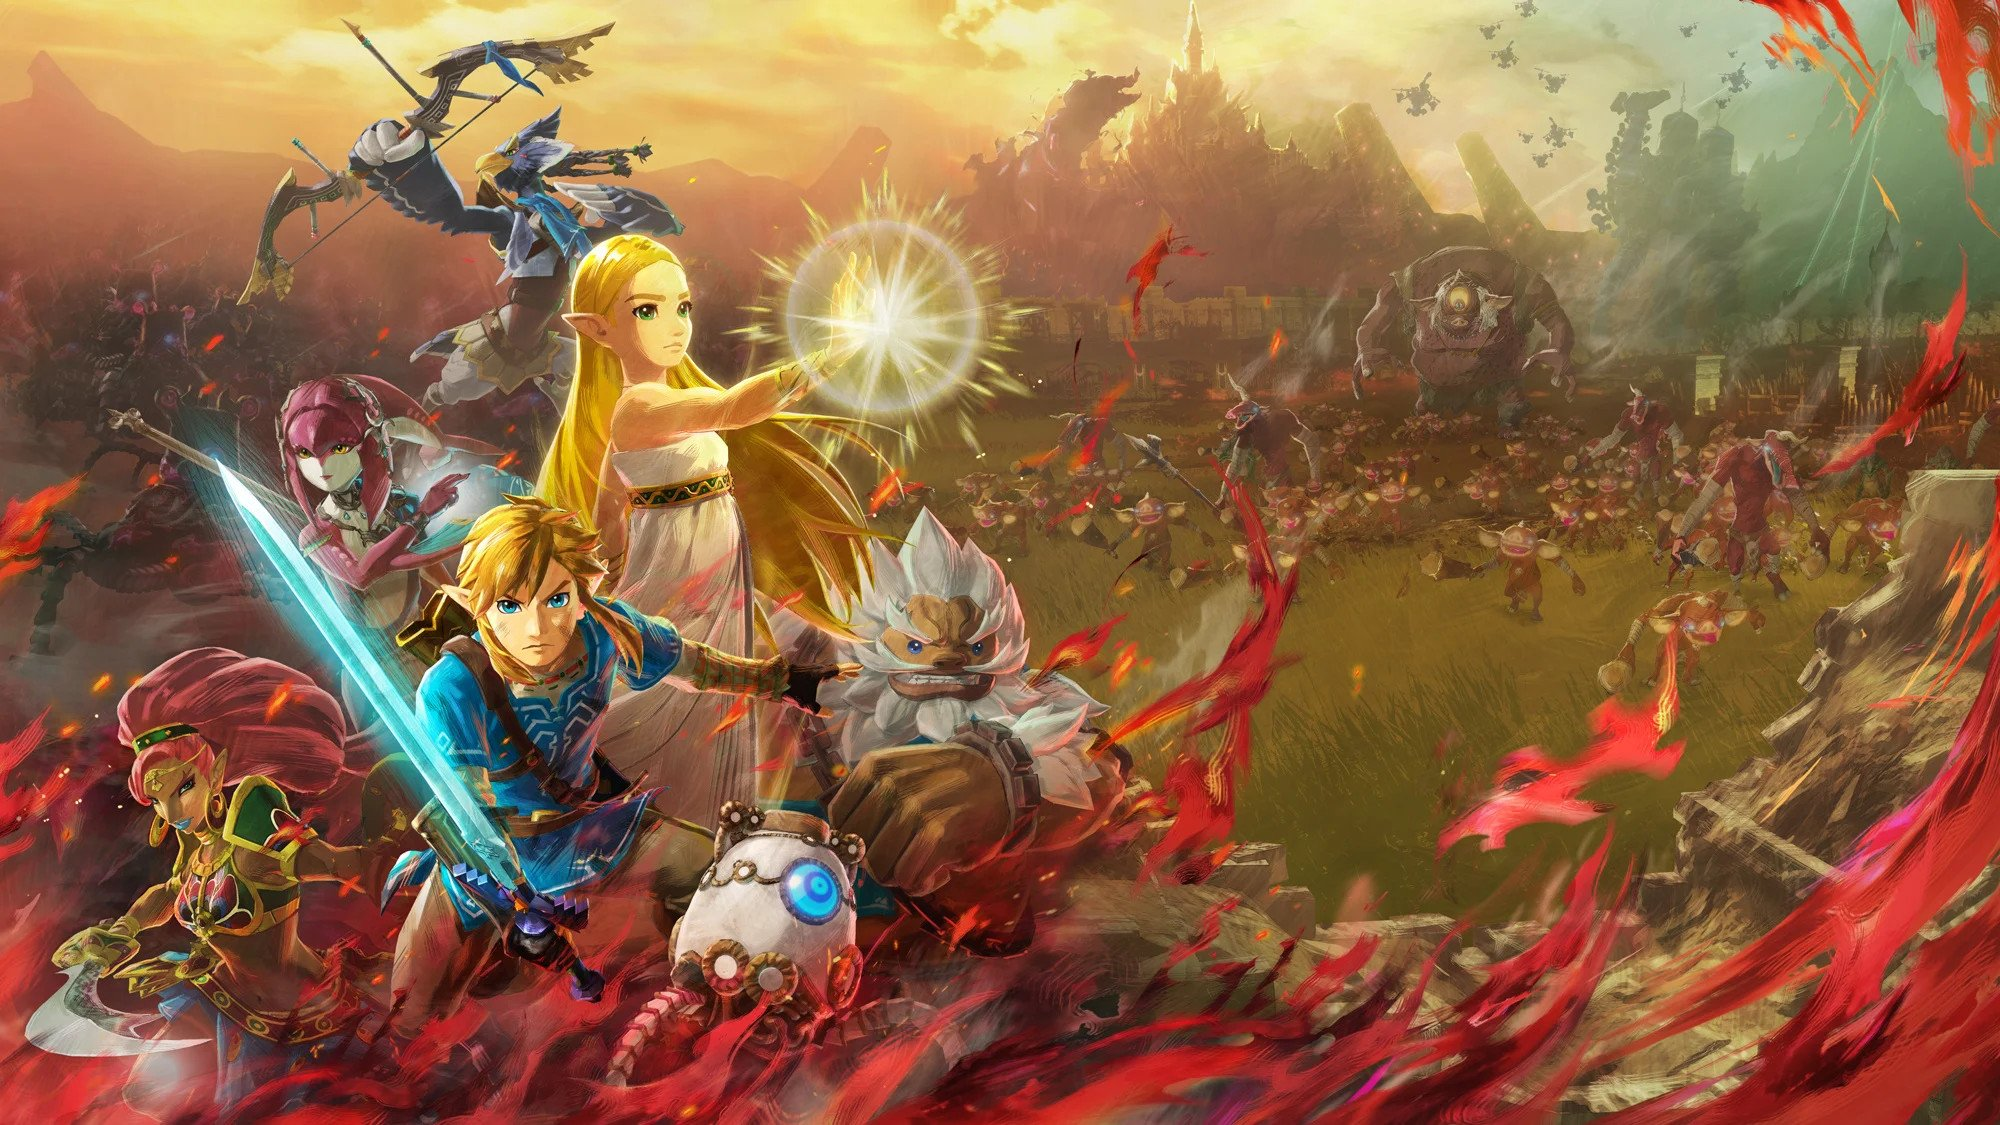 Famitsu S Hyrule Warriors Age Of Calamity Review Says It S One Of 2020 S Best Switch Games Vgc